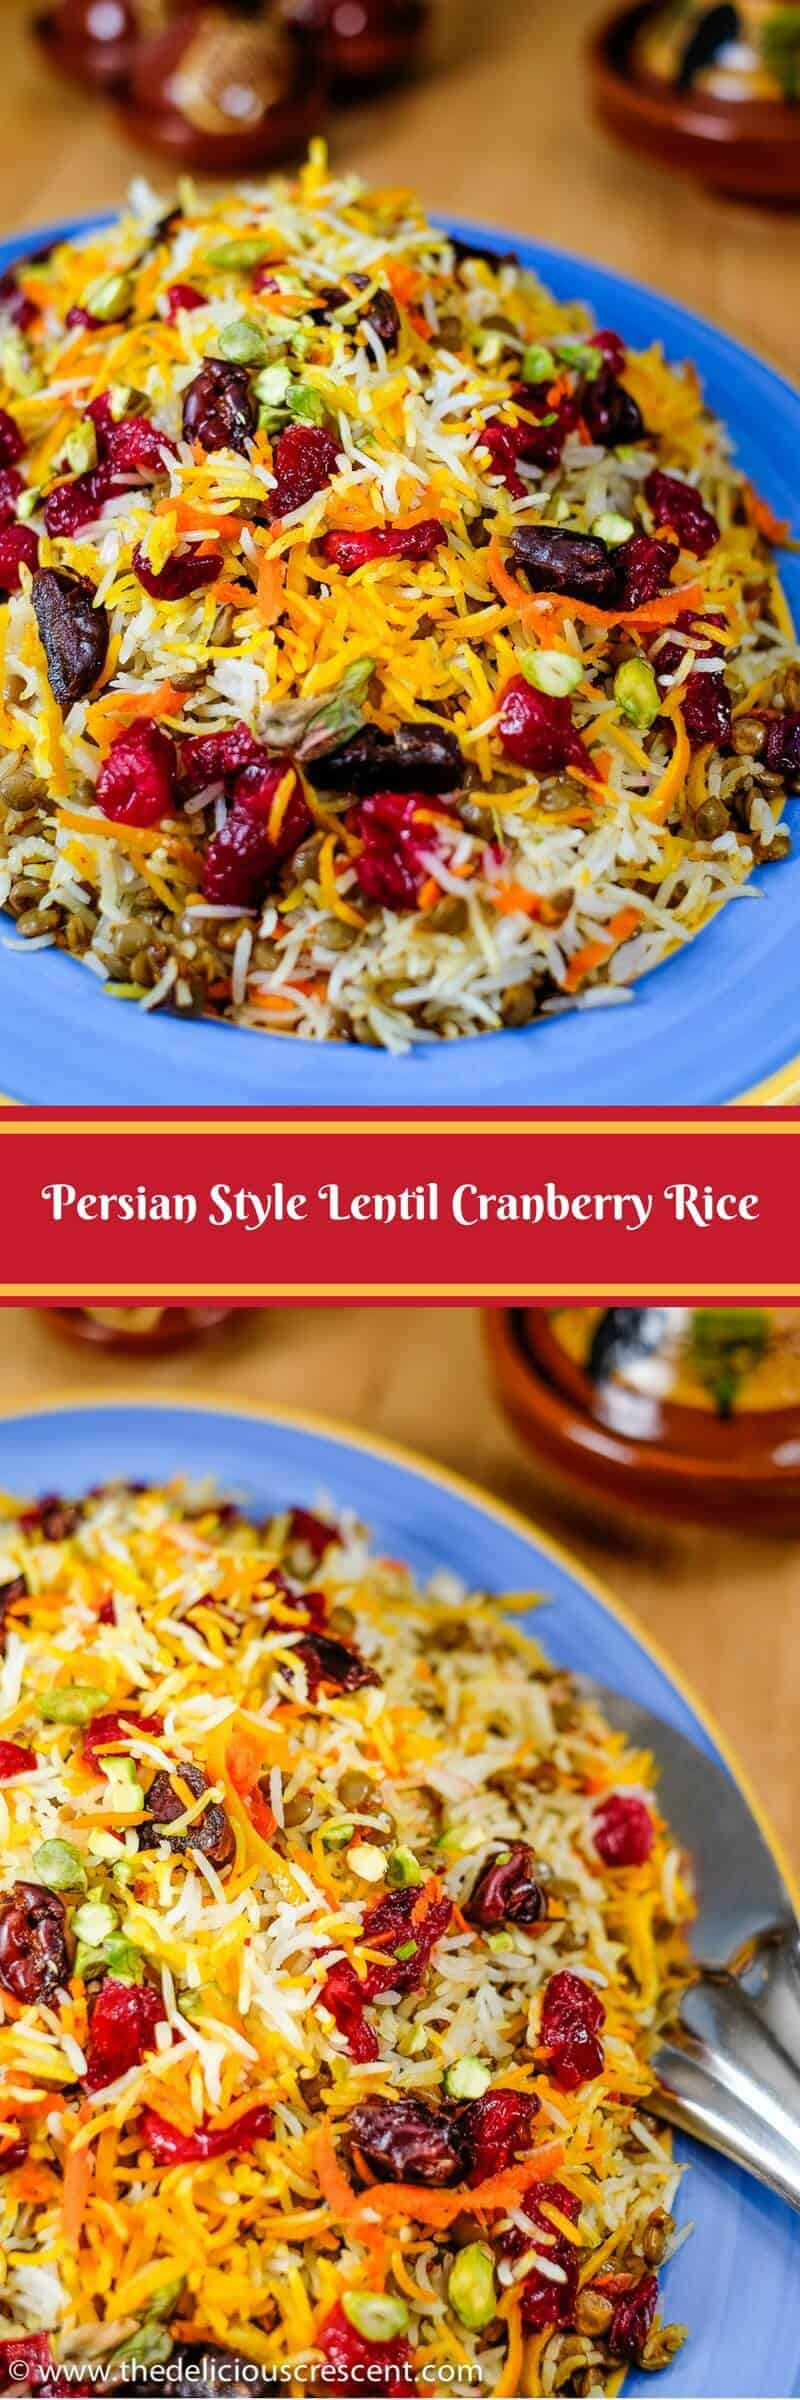 Collage of pictures of lentil cranberry rice. A Persian style aromatic dish that is a bit tangy, subtly sweet and savory, packed with plant protein, fiber, antioxidants and healthy fats. It is vegan, gluten free and so easy to make.